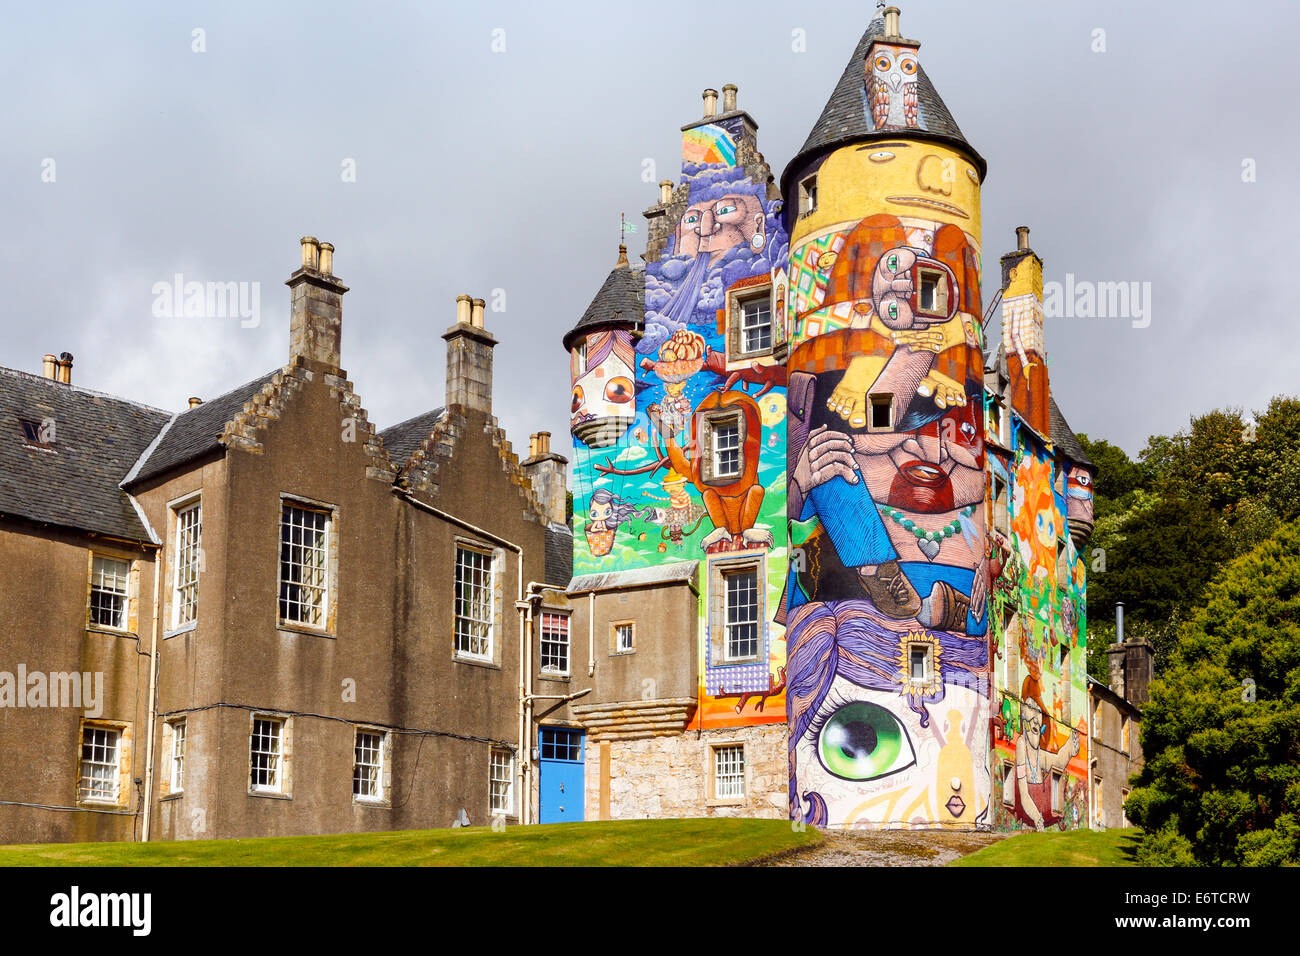 Kelburn Castle near Fairlie, Largs, Ayrshire, Scotland, a 16th century restored historic castle, painted with colourful - Stock Image